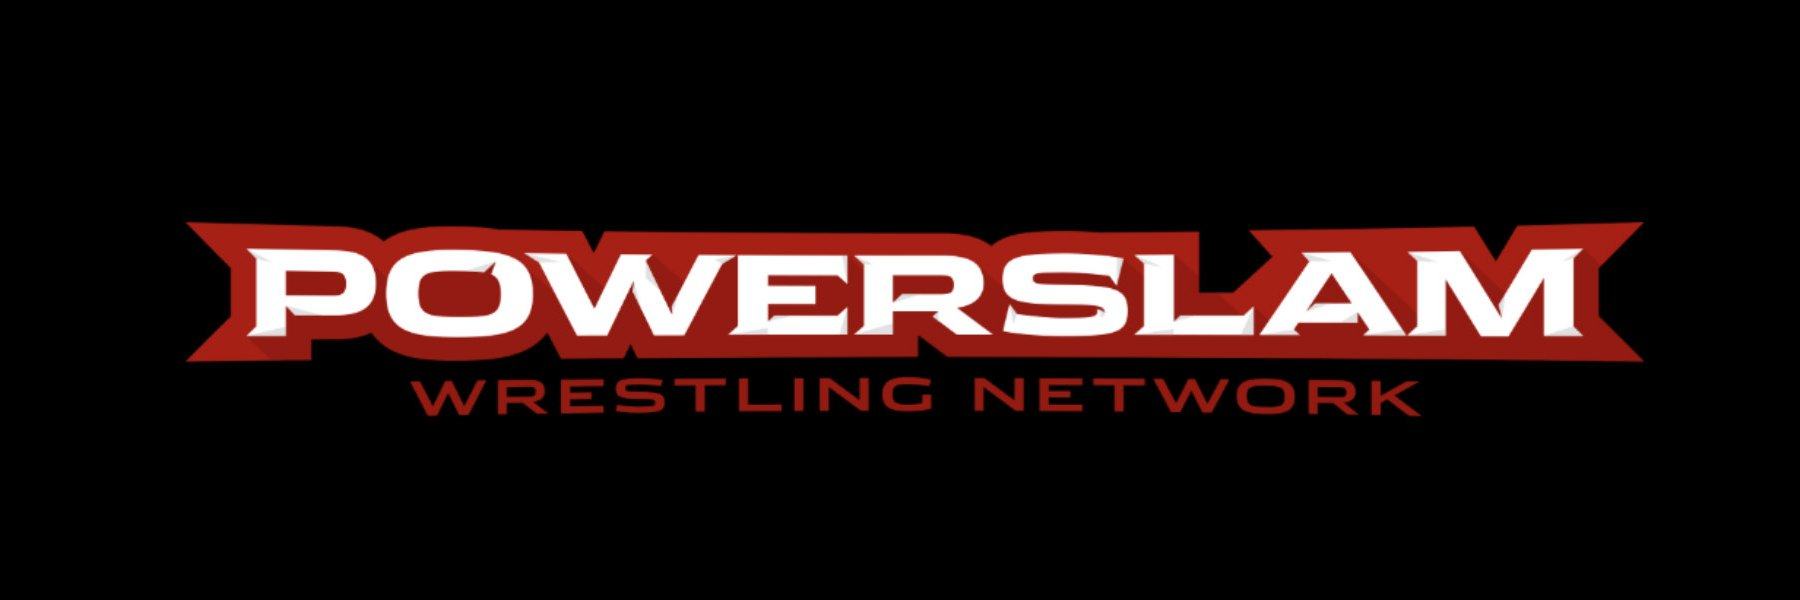 Powerslam.TV! The Best Pro Wrestling Channel in the World!